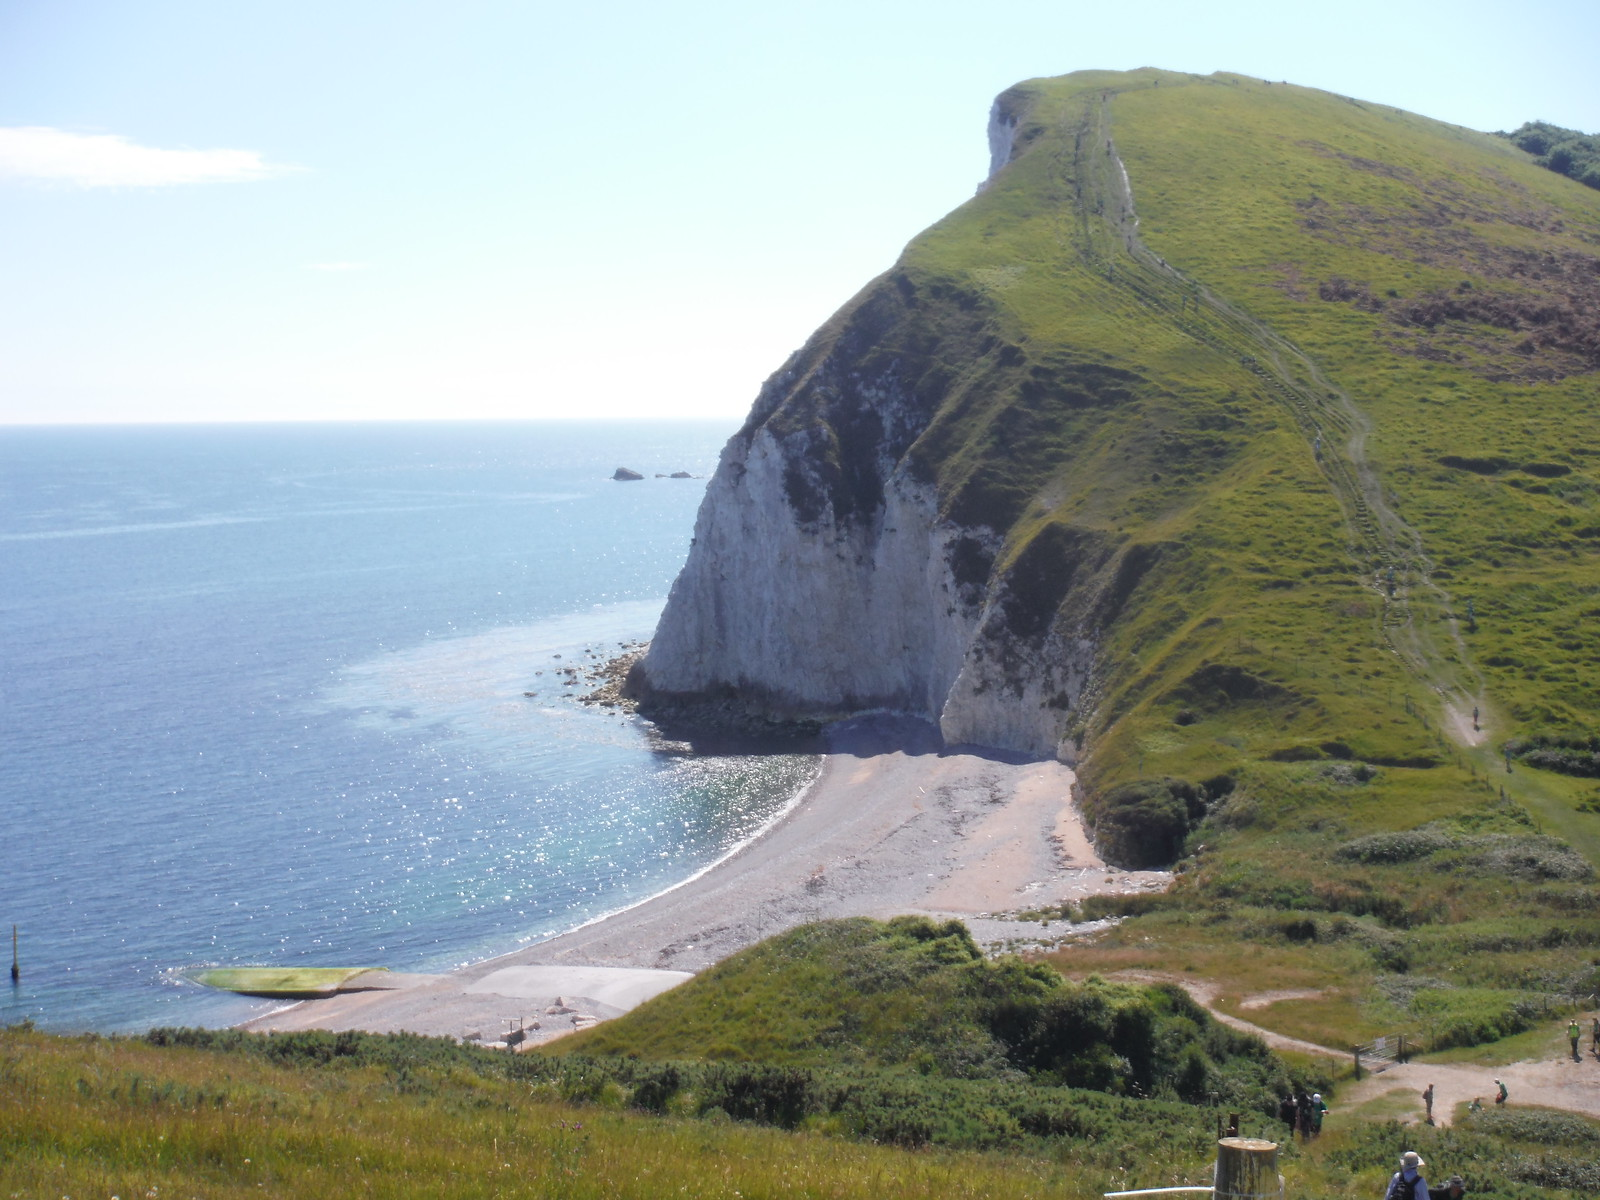 Arish Mell and Bindon Hill SWC Walk 54 - Lulworth Cove Circular (via Tyneham and Durdle Door)